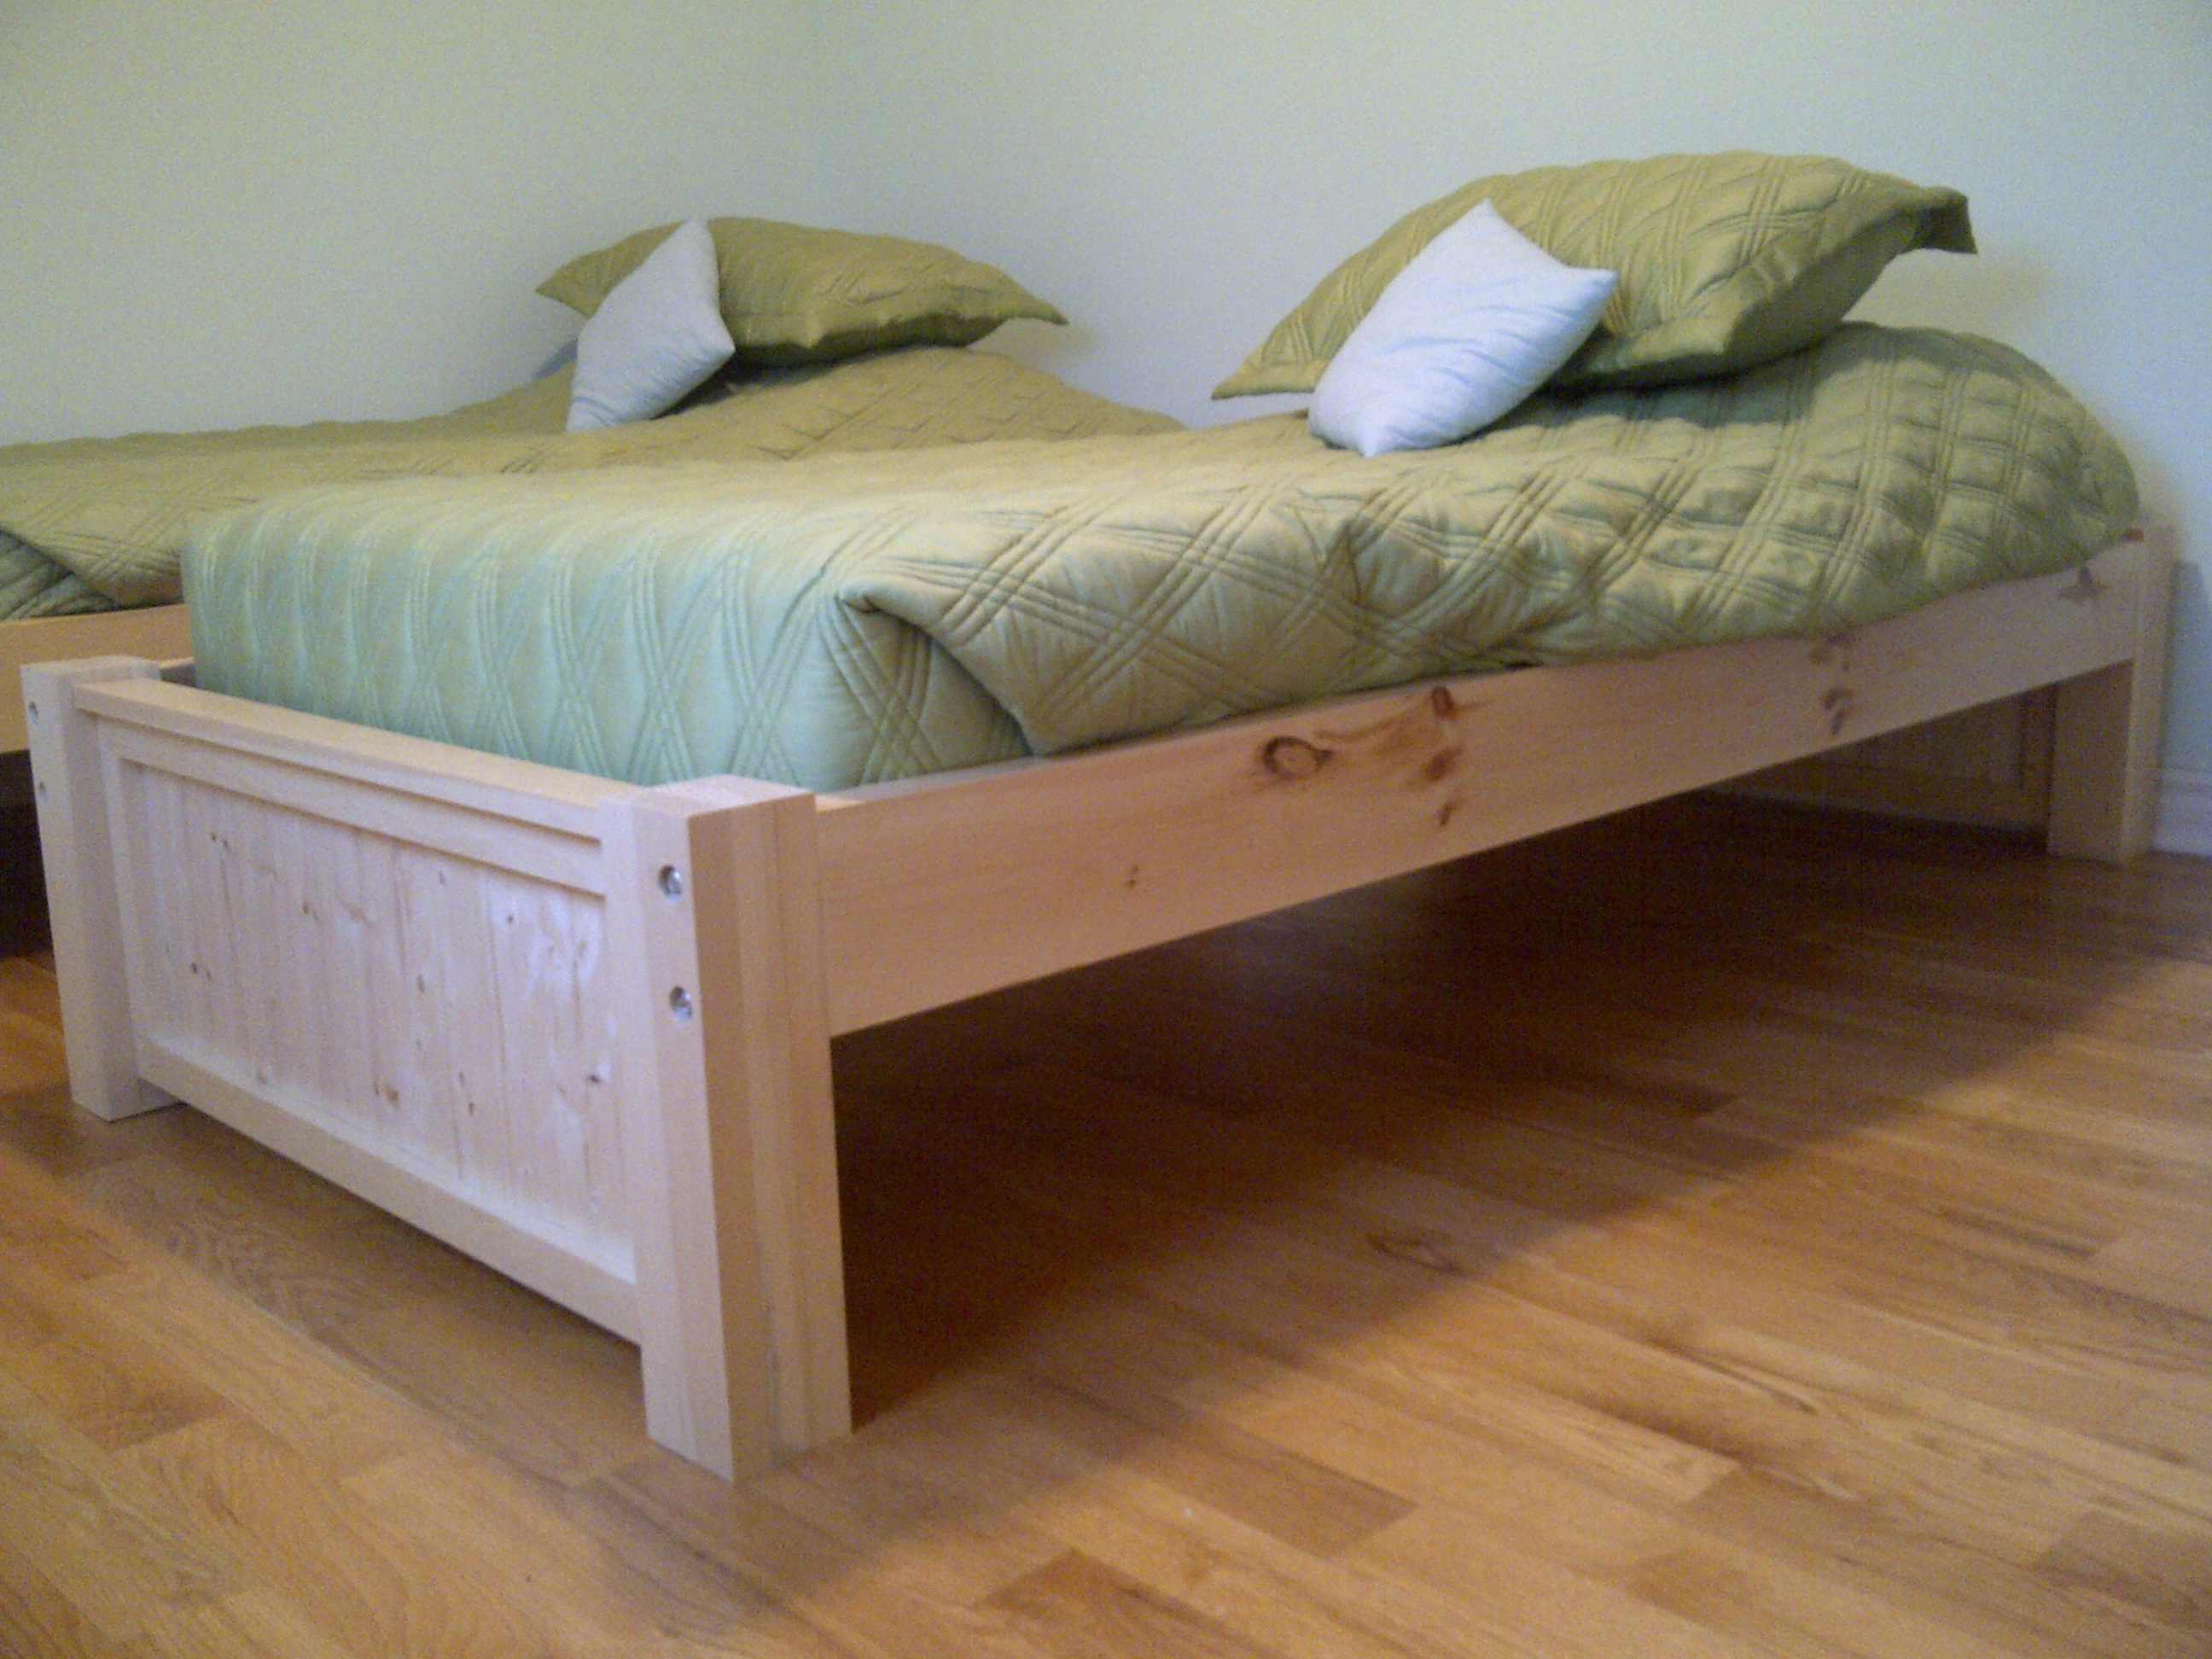 Easy Build Platform Bed Frame | Joy Studio Design Gallery ...